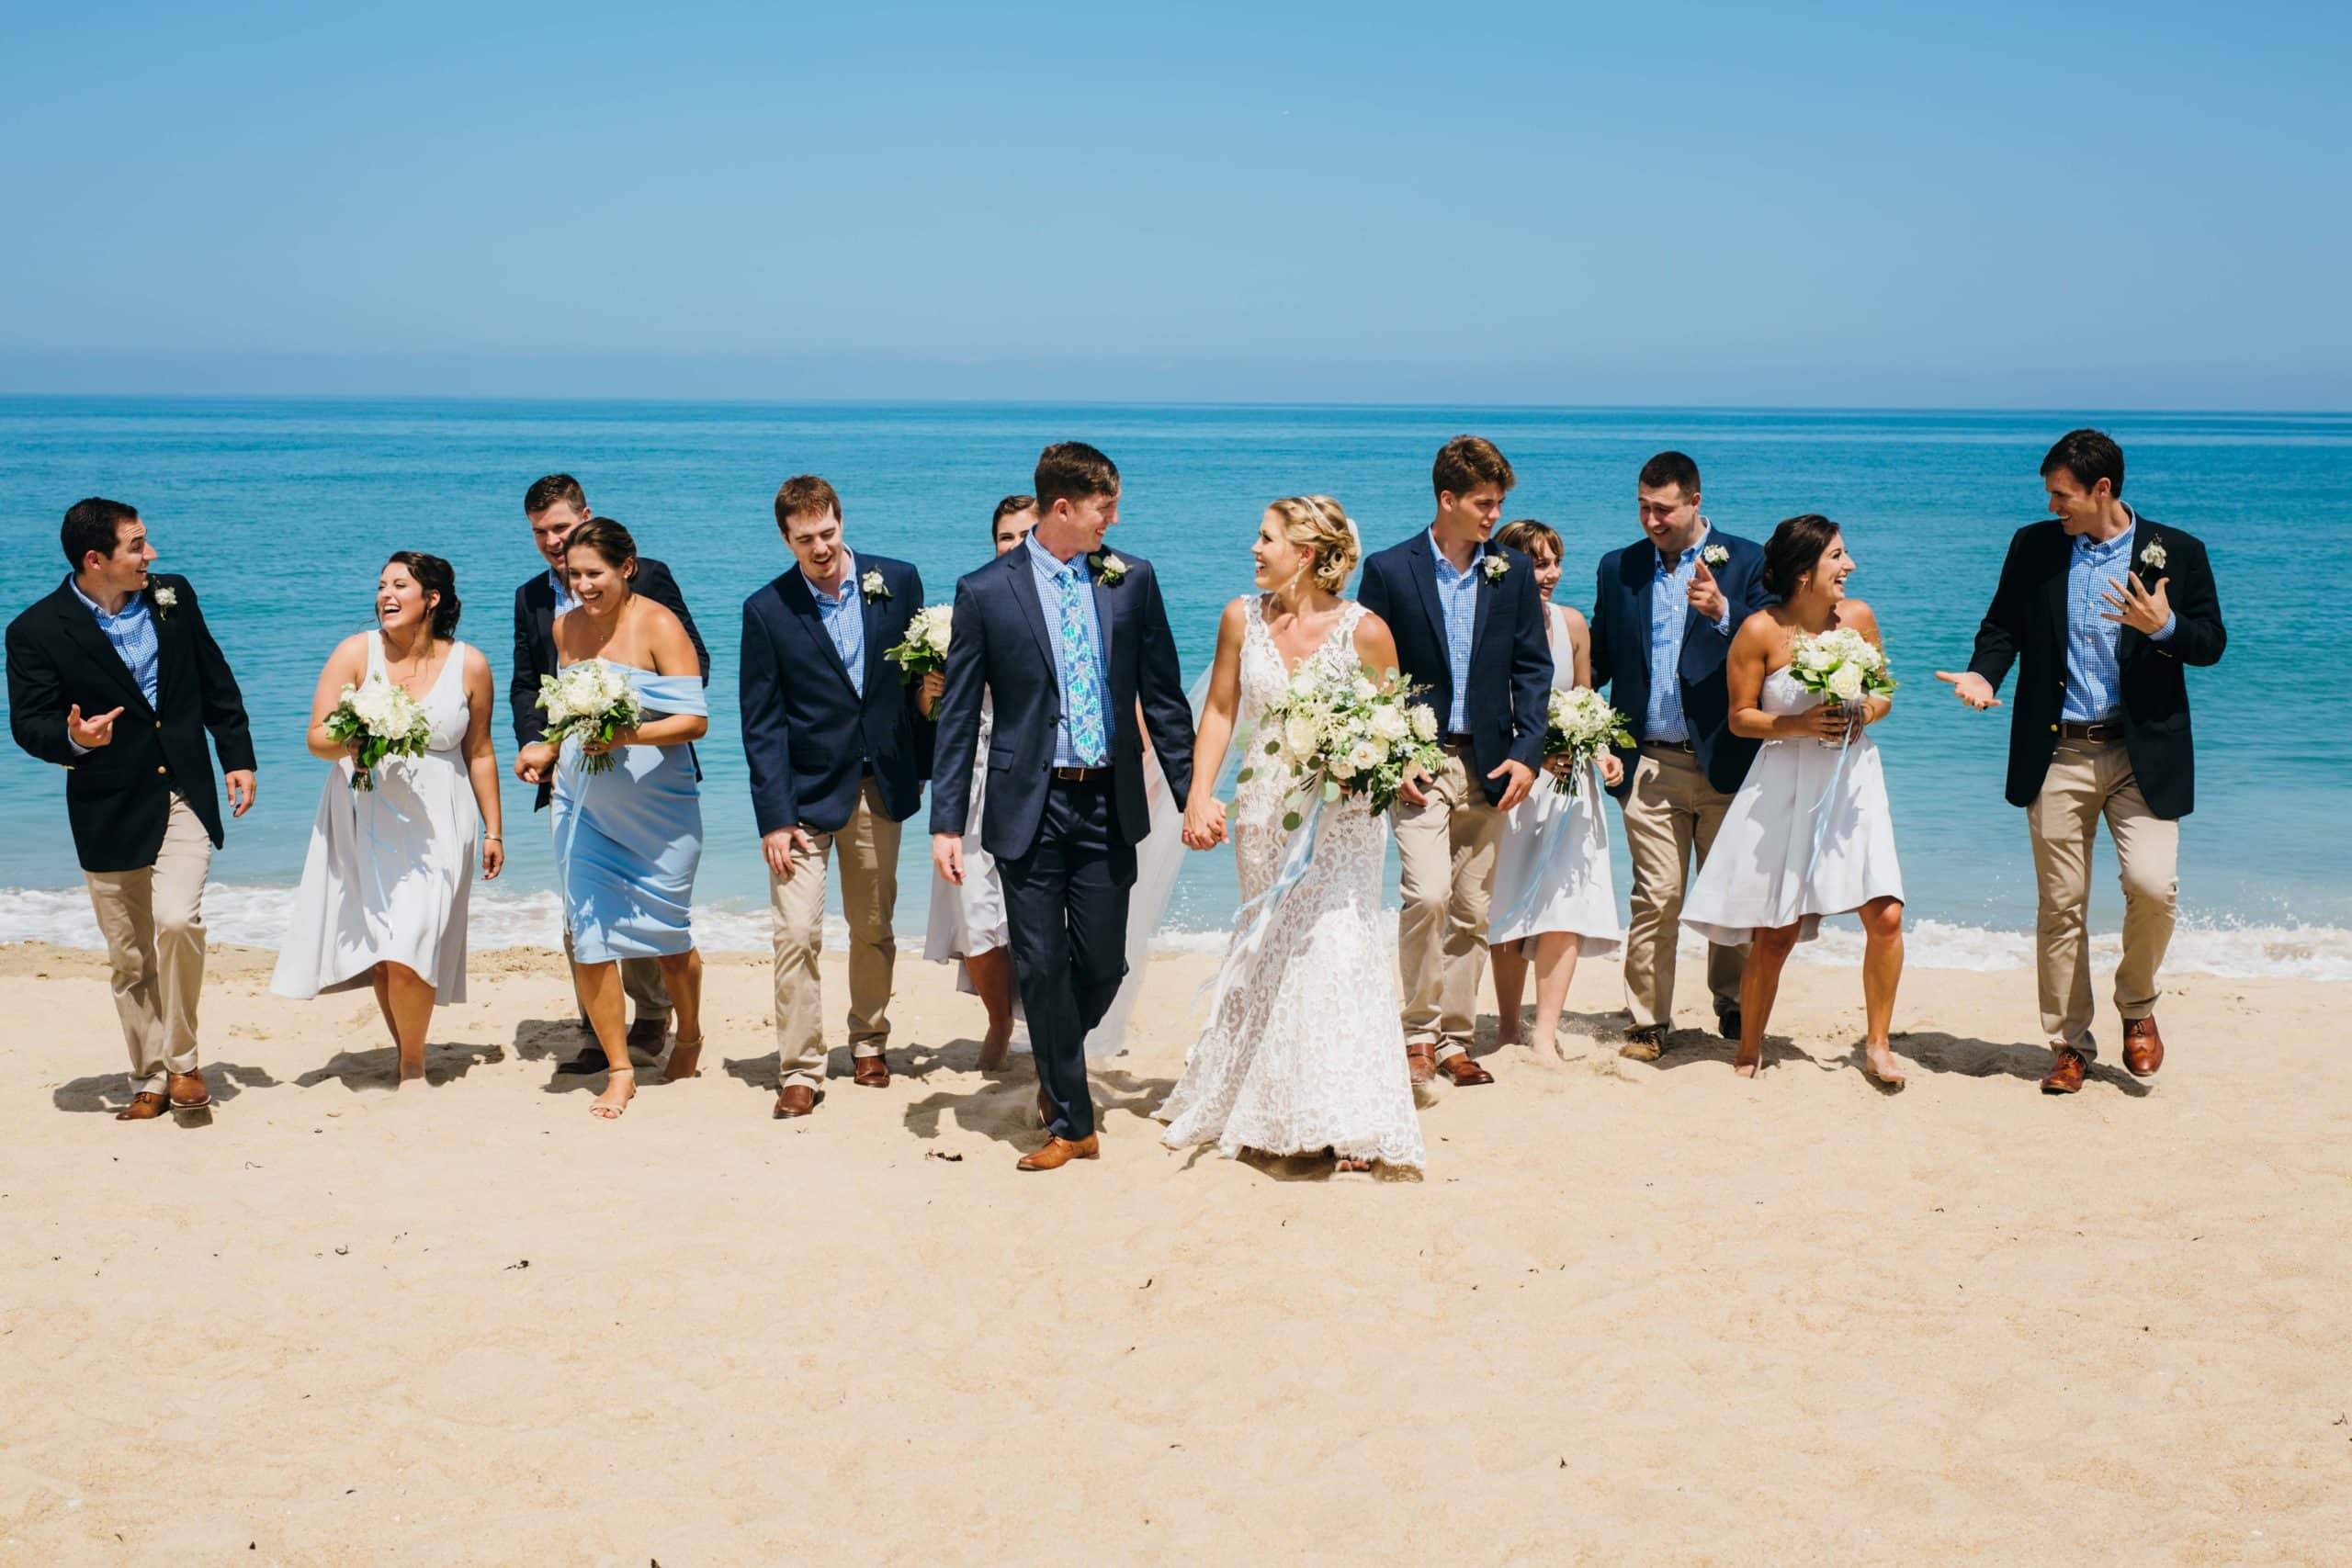 Summer Beach Wedding by Sarah D'Ambra Photography